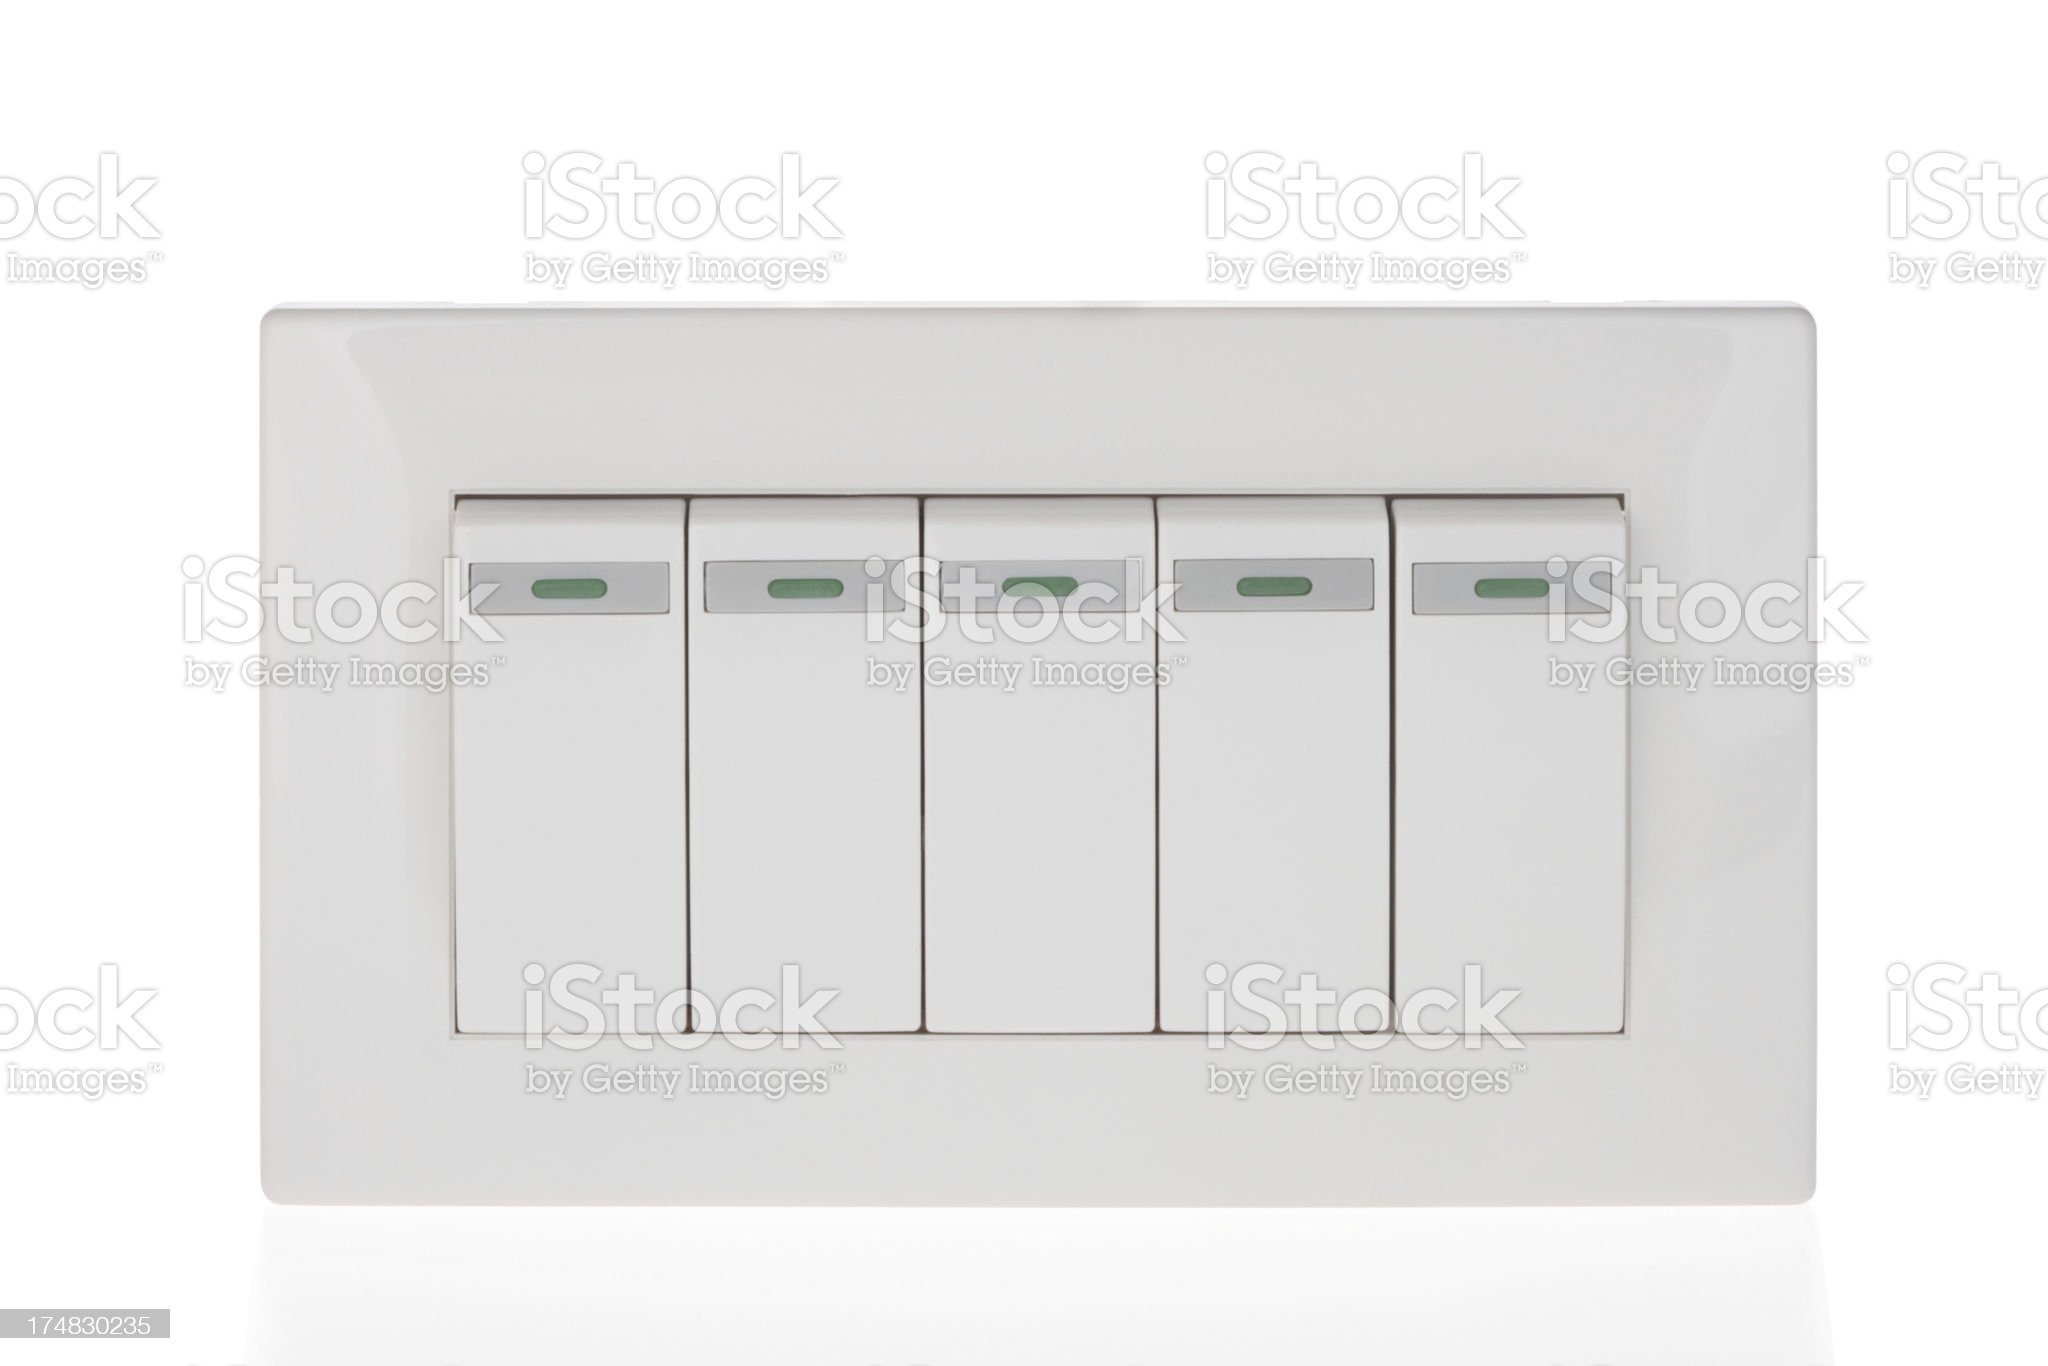 Light switches on white background royalty-free stock photo